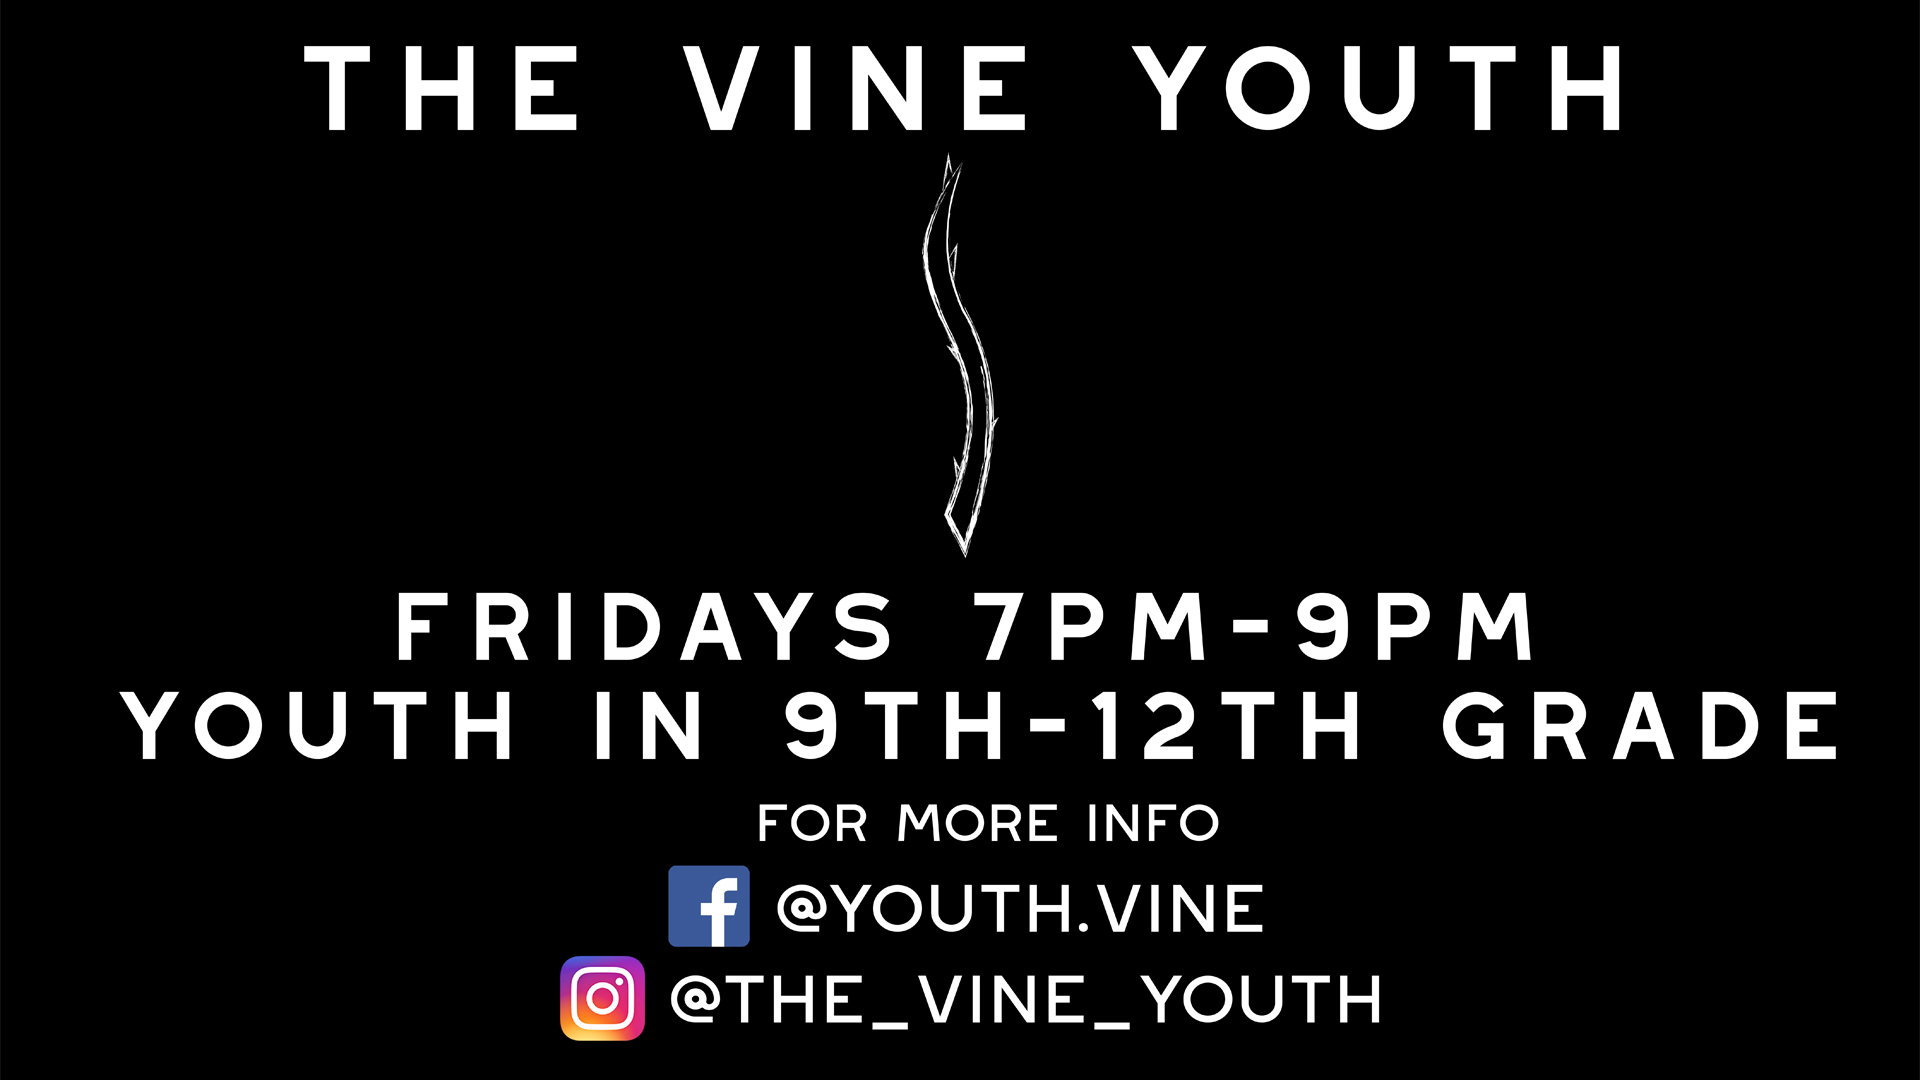 The Vine Youth